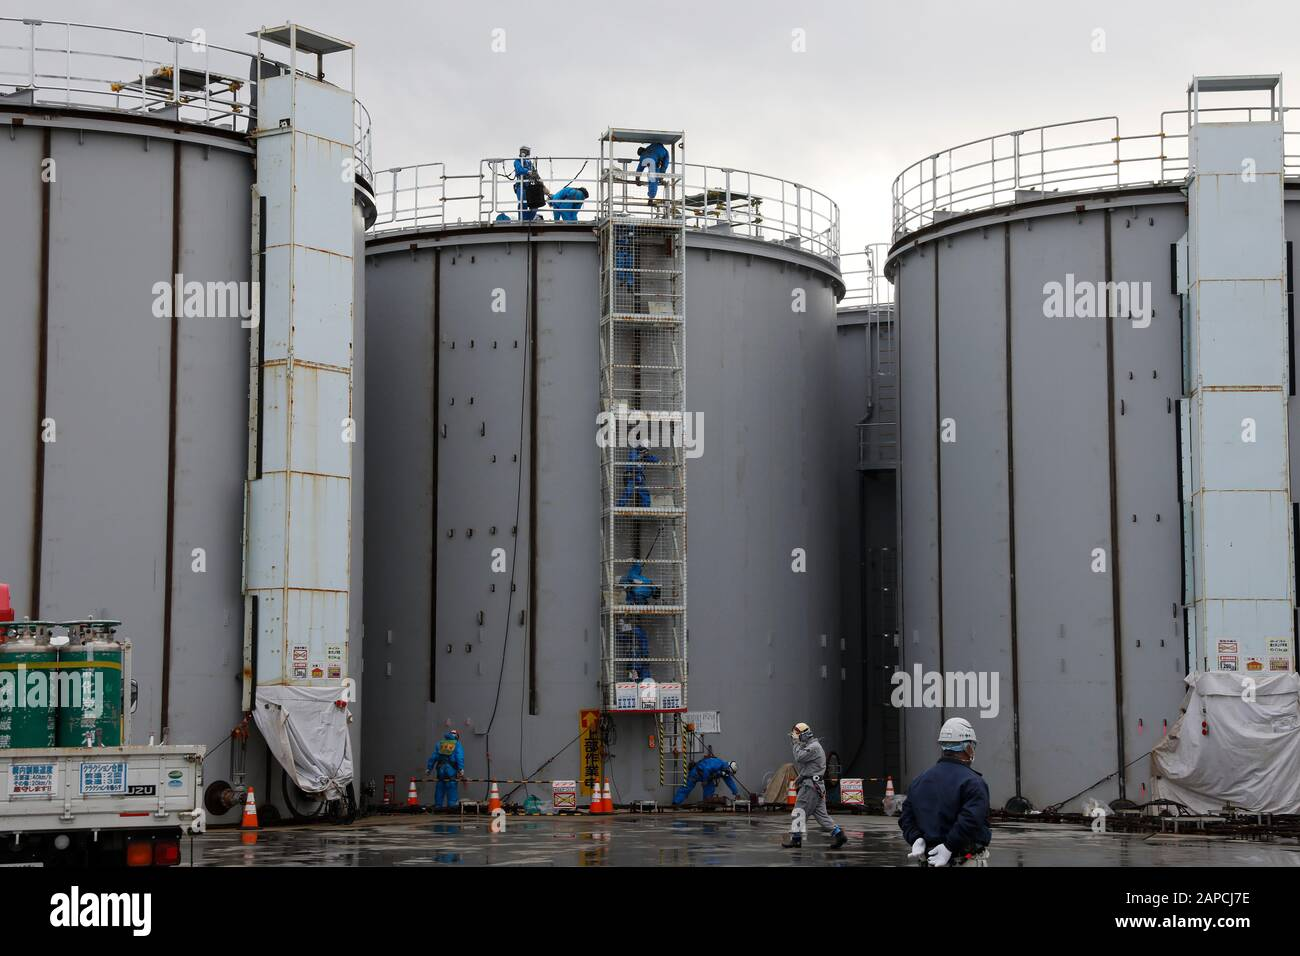 January 22, 2020, Okuma, Fukushima, Japan: Workers construct new storage tanks to store processed water in ALPS water processing system to purify contaminated water at tsunami-devastated Tokyo Electric Power Company (TEPCO) Fukushima Daiichi Nuclear Power Plant in Okuma town, Fukushima Prefecture, 22 January 2020. The storage tanks including water processed in the ALPS will be full around summer of 2022, TEPCO has told. Japanese government need to decide soon how manage the processed water still including tritium.  (Credit Image: © Kimimasa Mayama/POOL via ZUMA Wire) Stock Photo